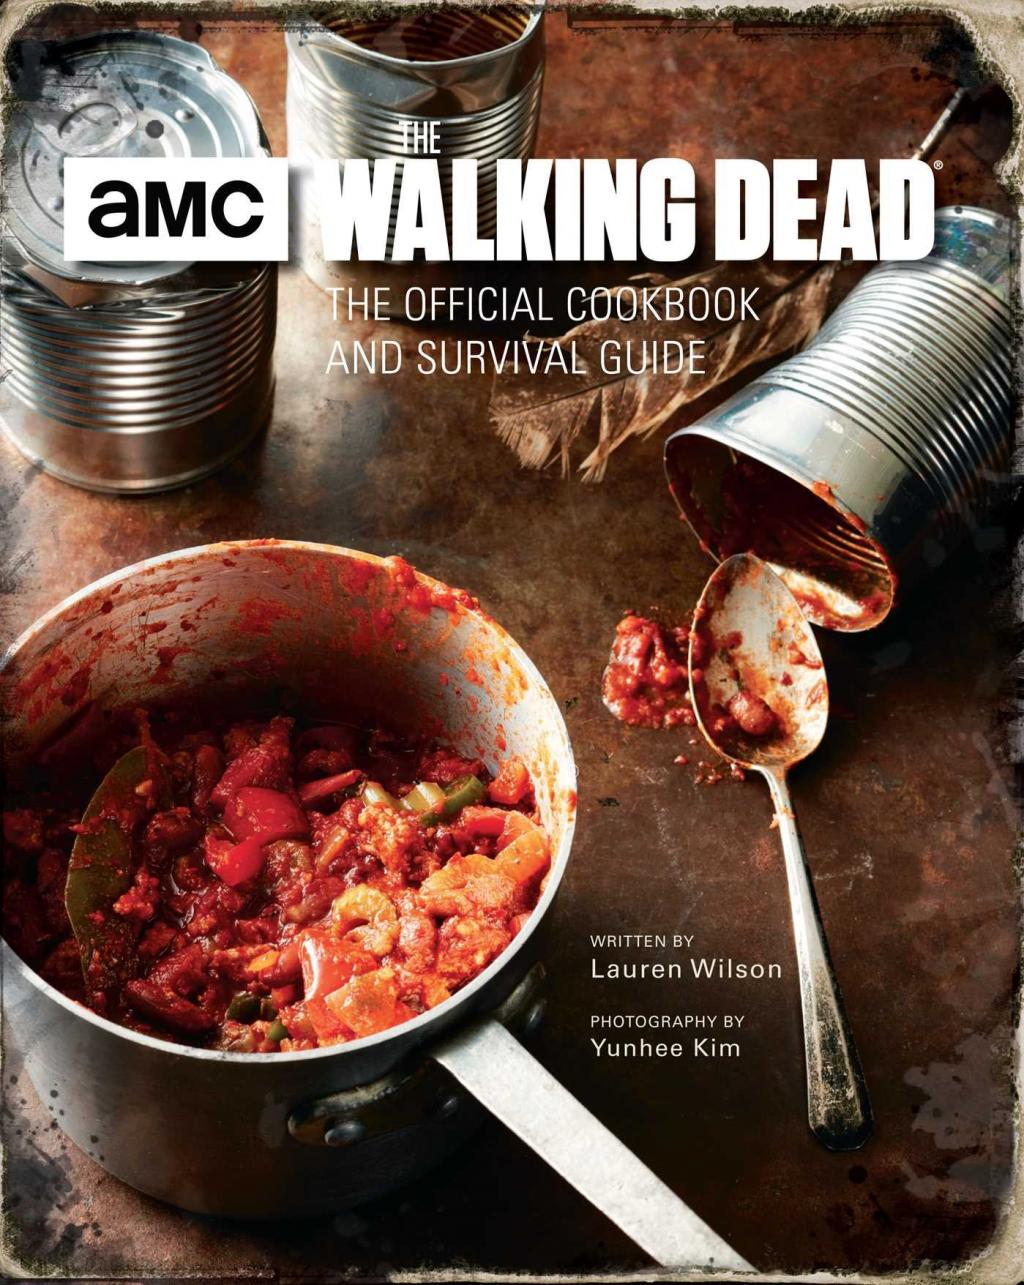 WALKING DEAD - The Official Cookbook and Survival Guide (UK)